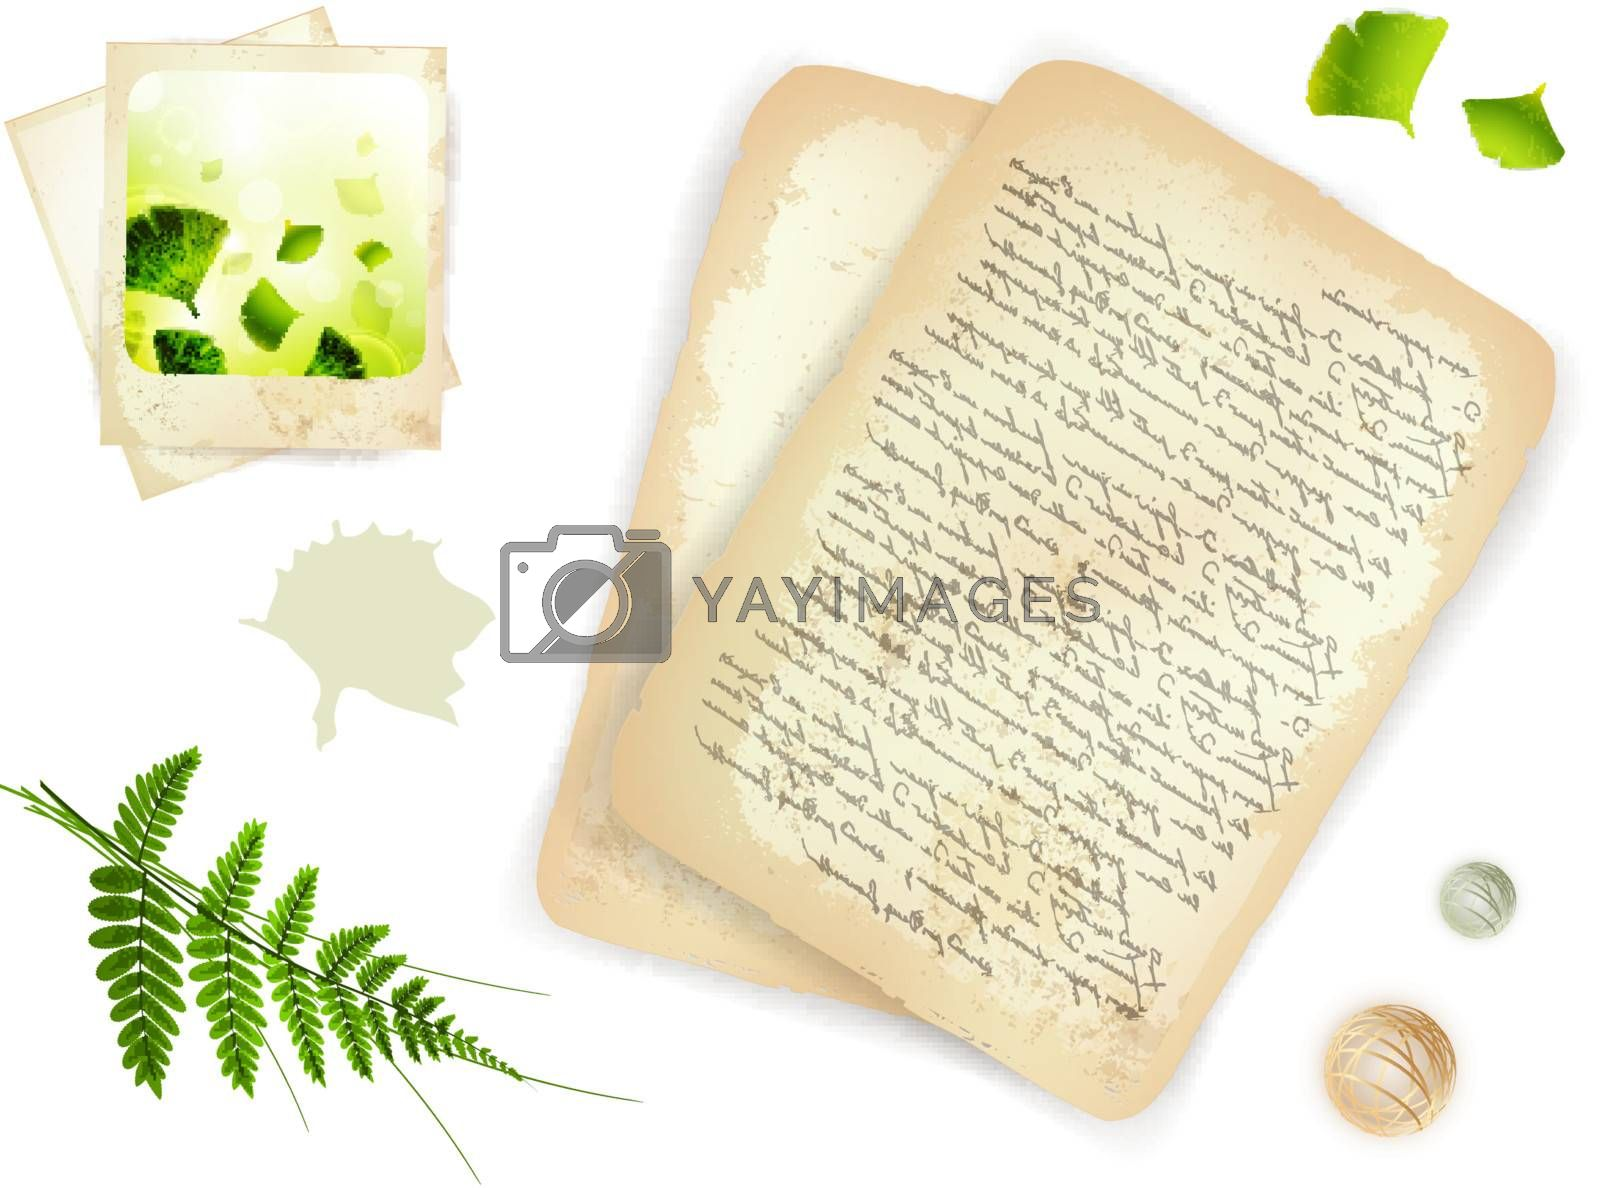 Vintage objects: 18th century letter, old nature photo and green leaves over white background